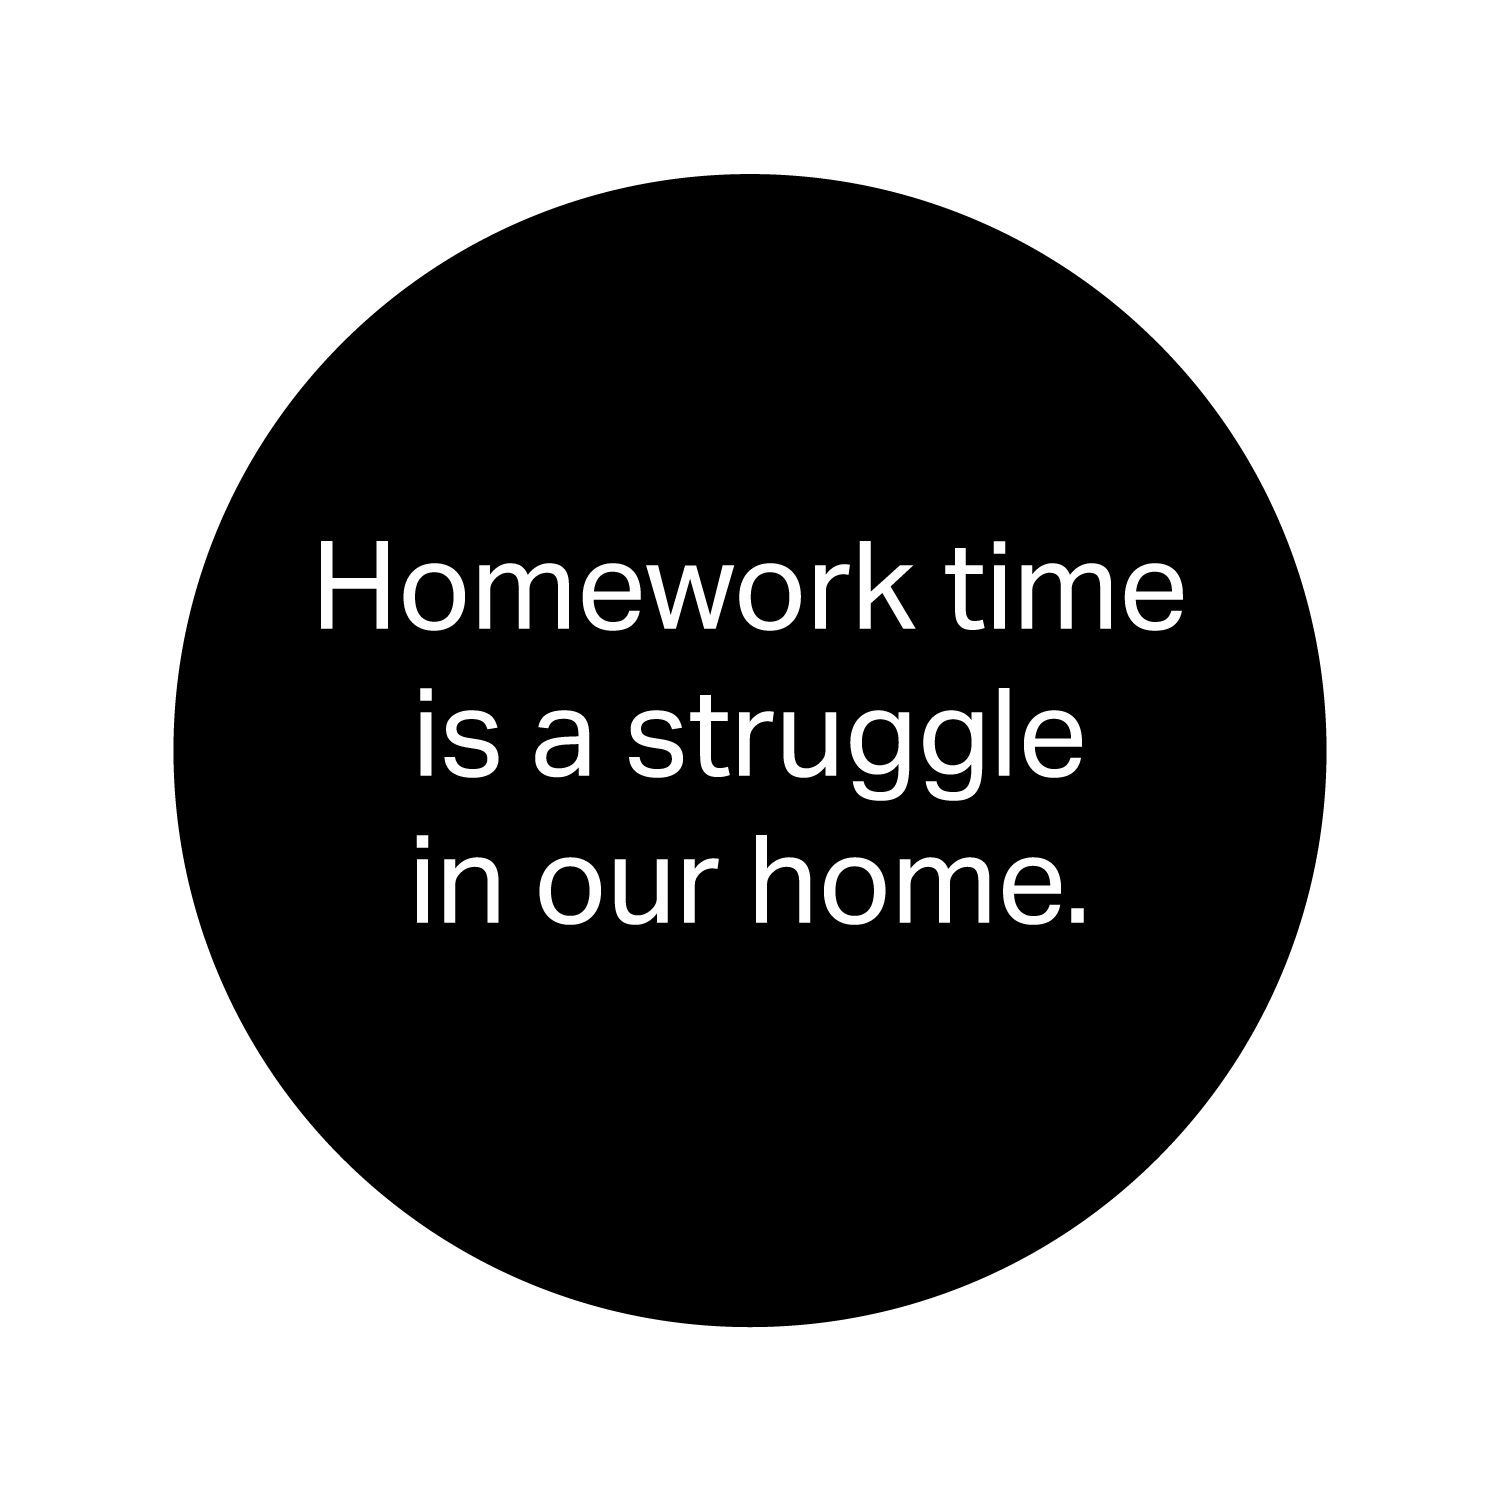 Homework time is a struggle in our home.